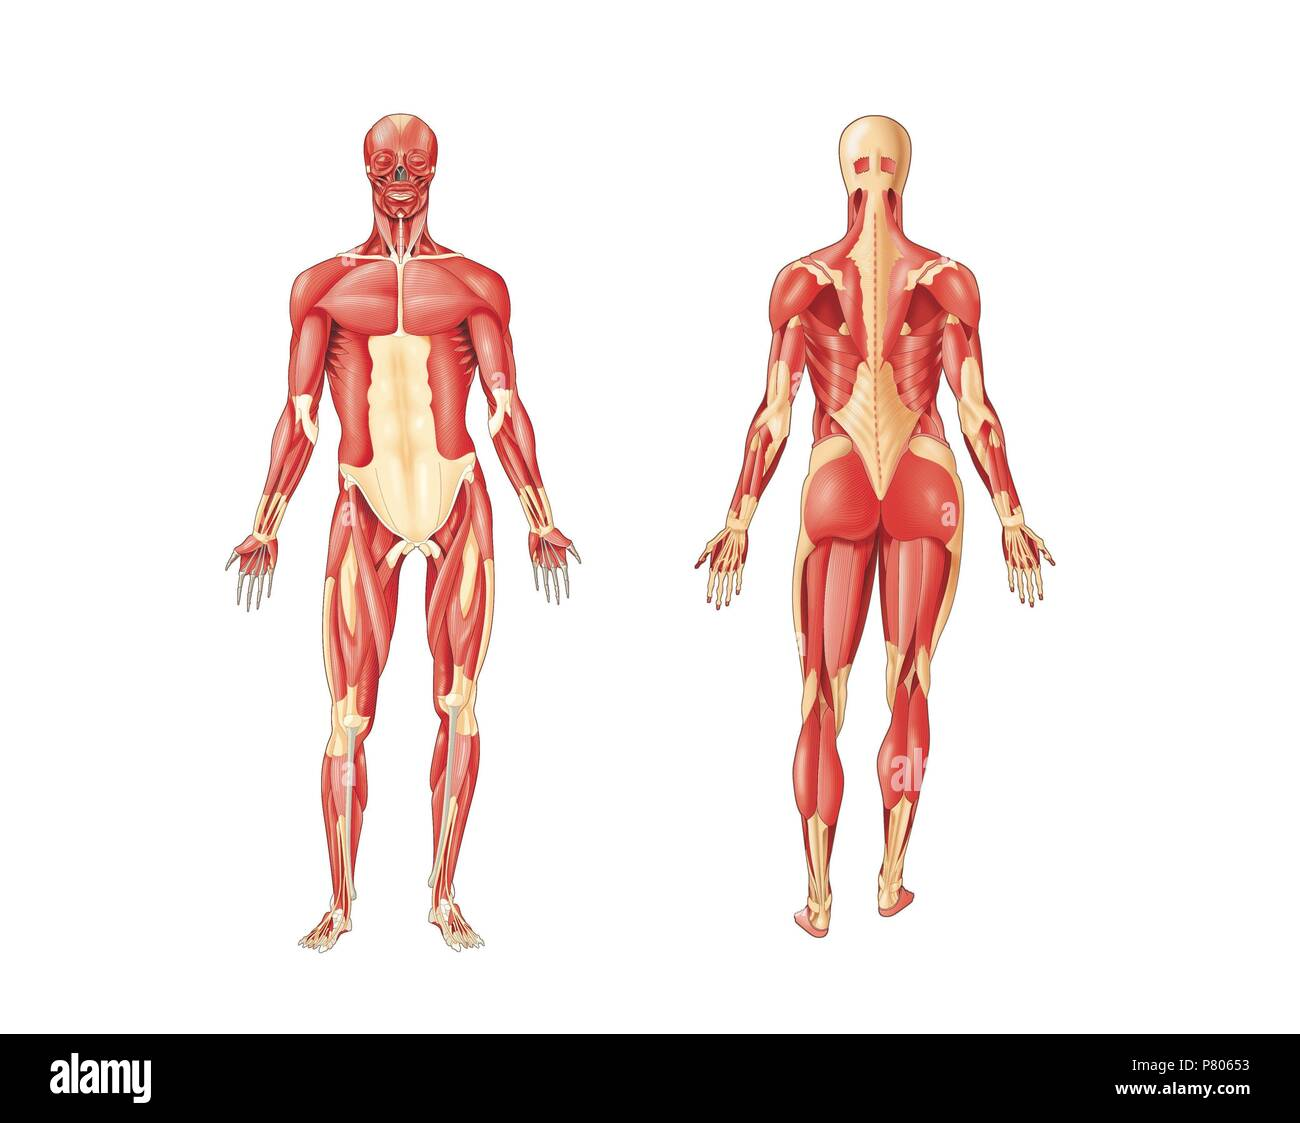 Major Muscles Of The Human Body Anterior And Posterior View Stock